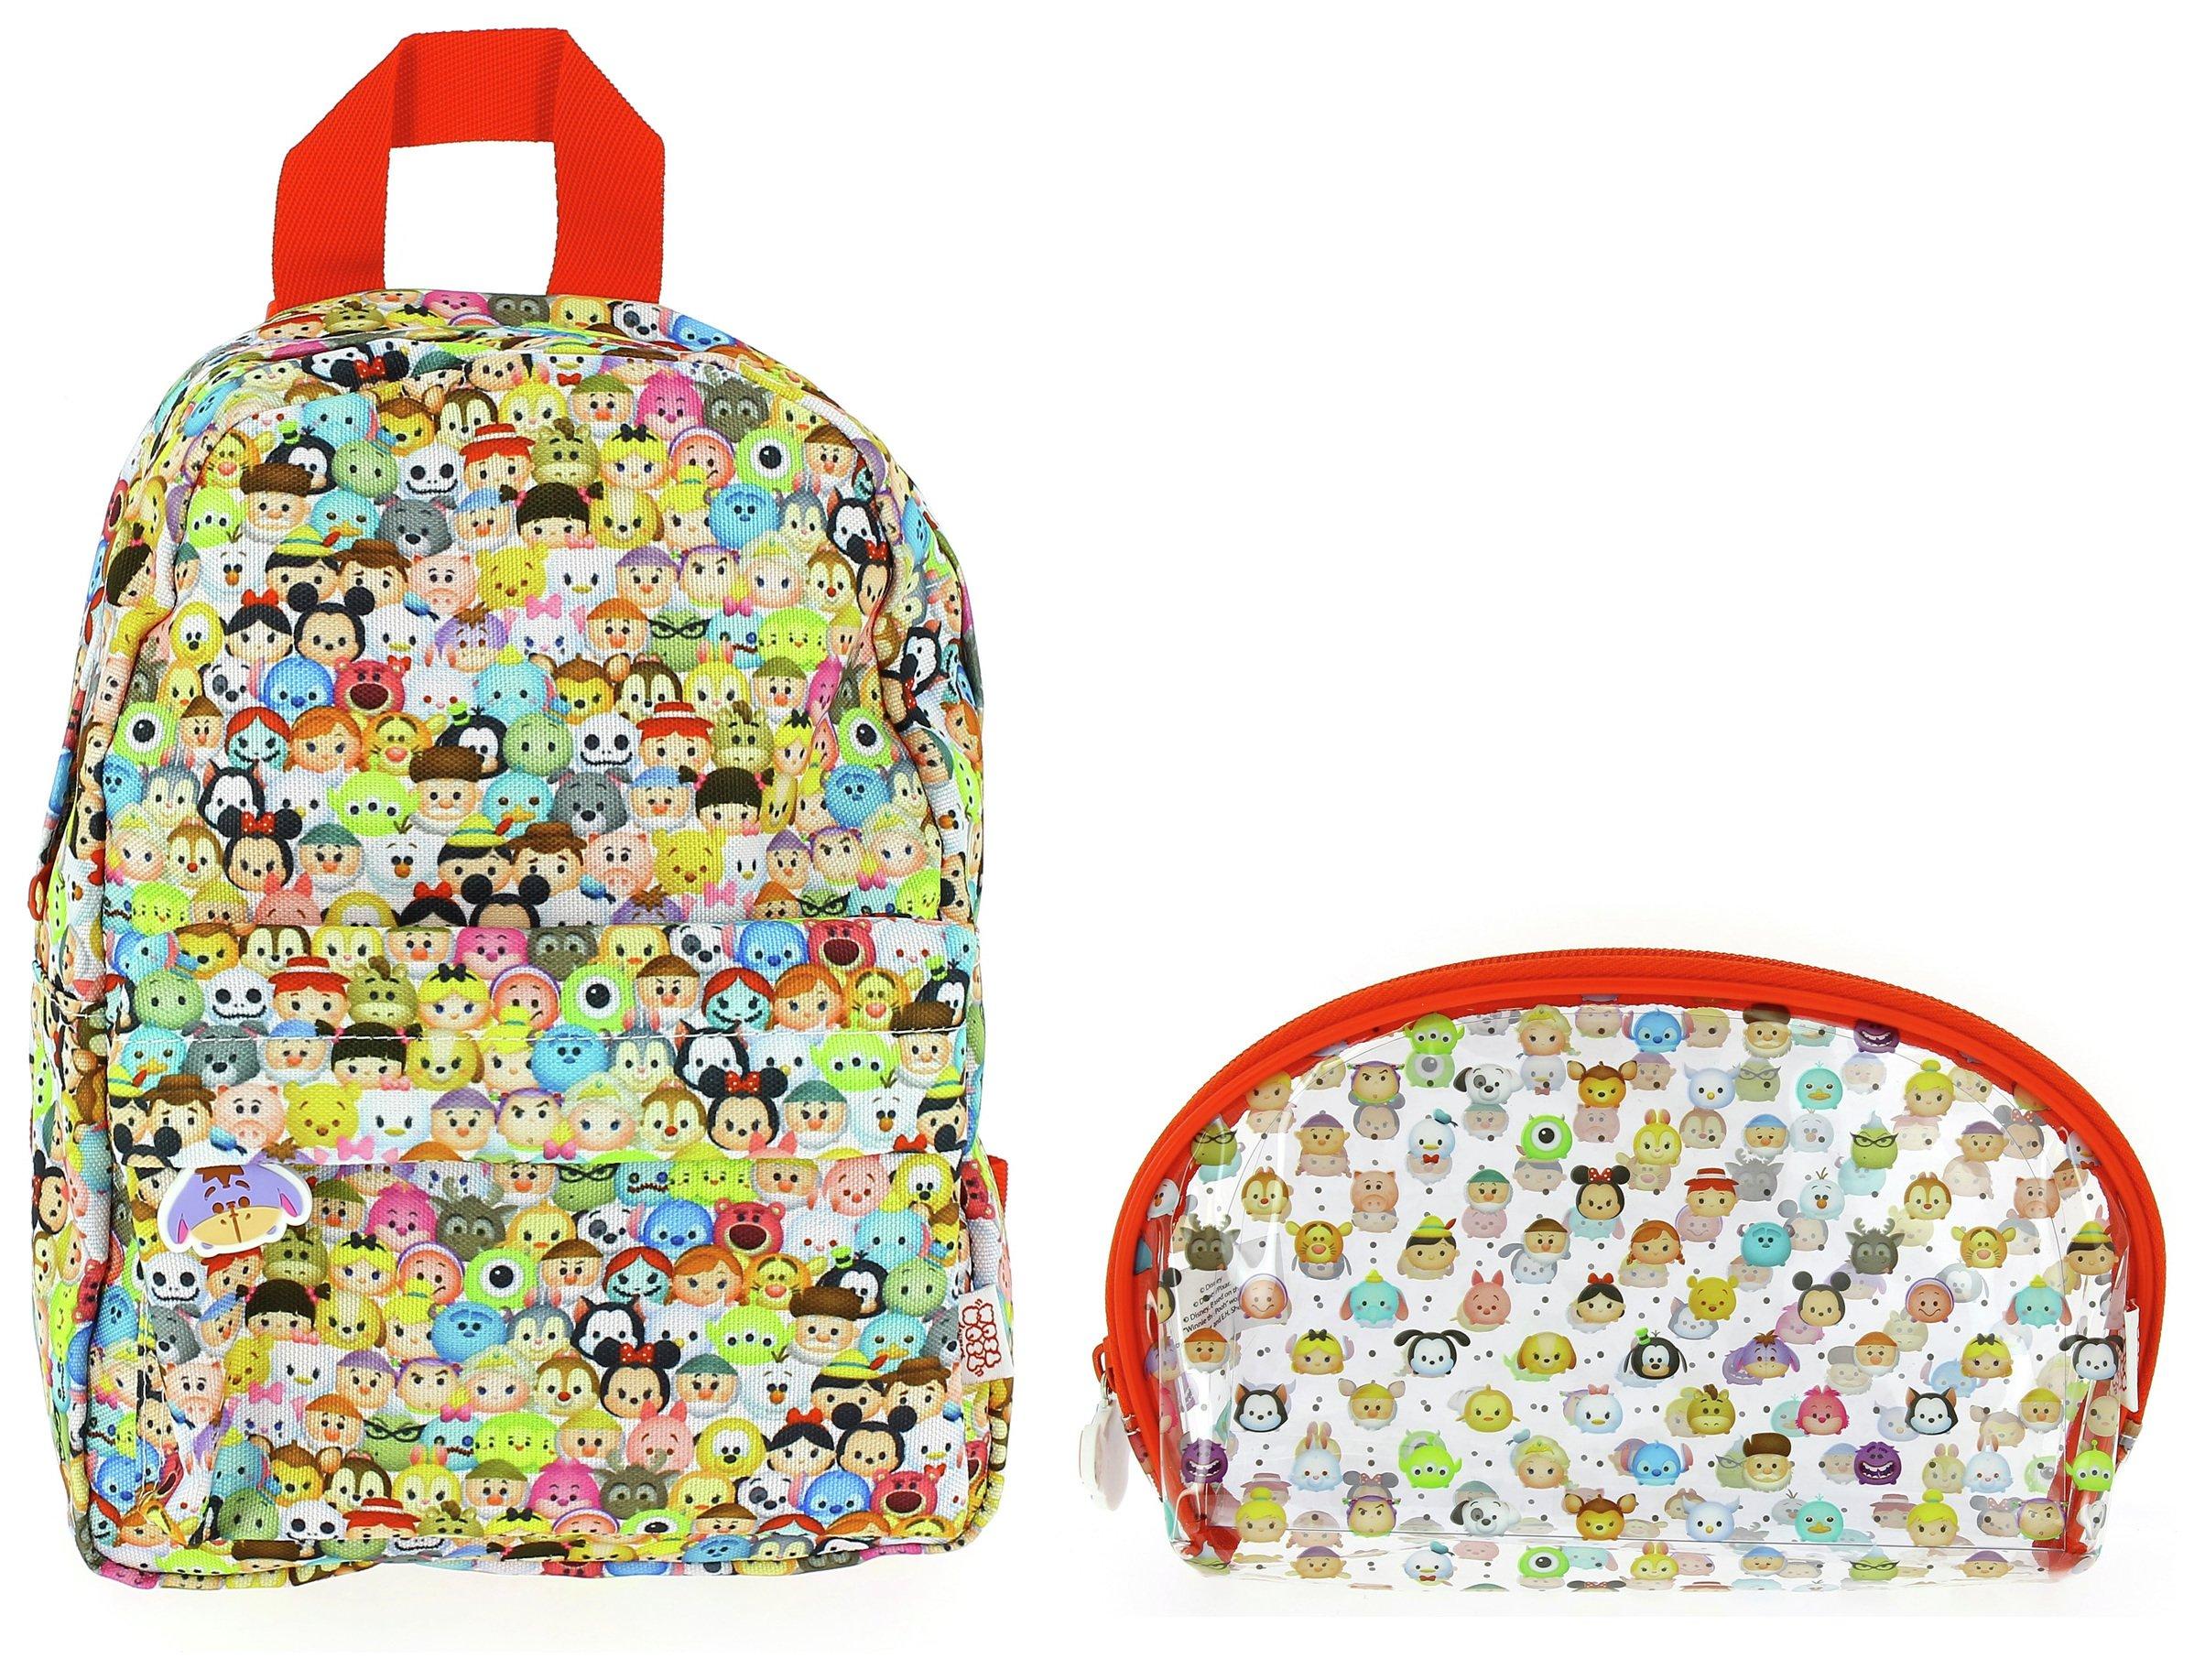 Image of Disney Tsum Tsum Mini Backpack & Pencil Case.